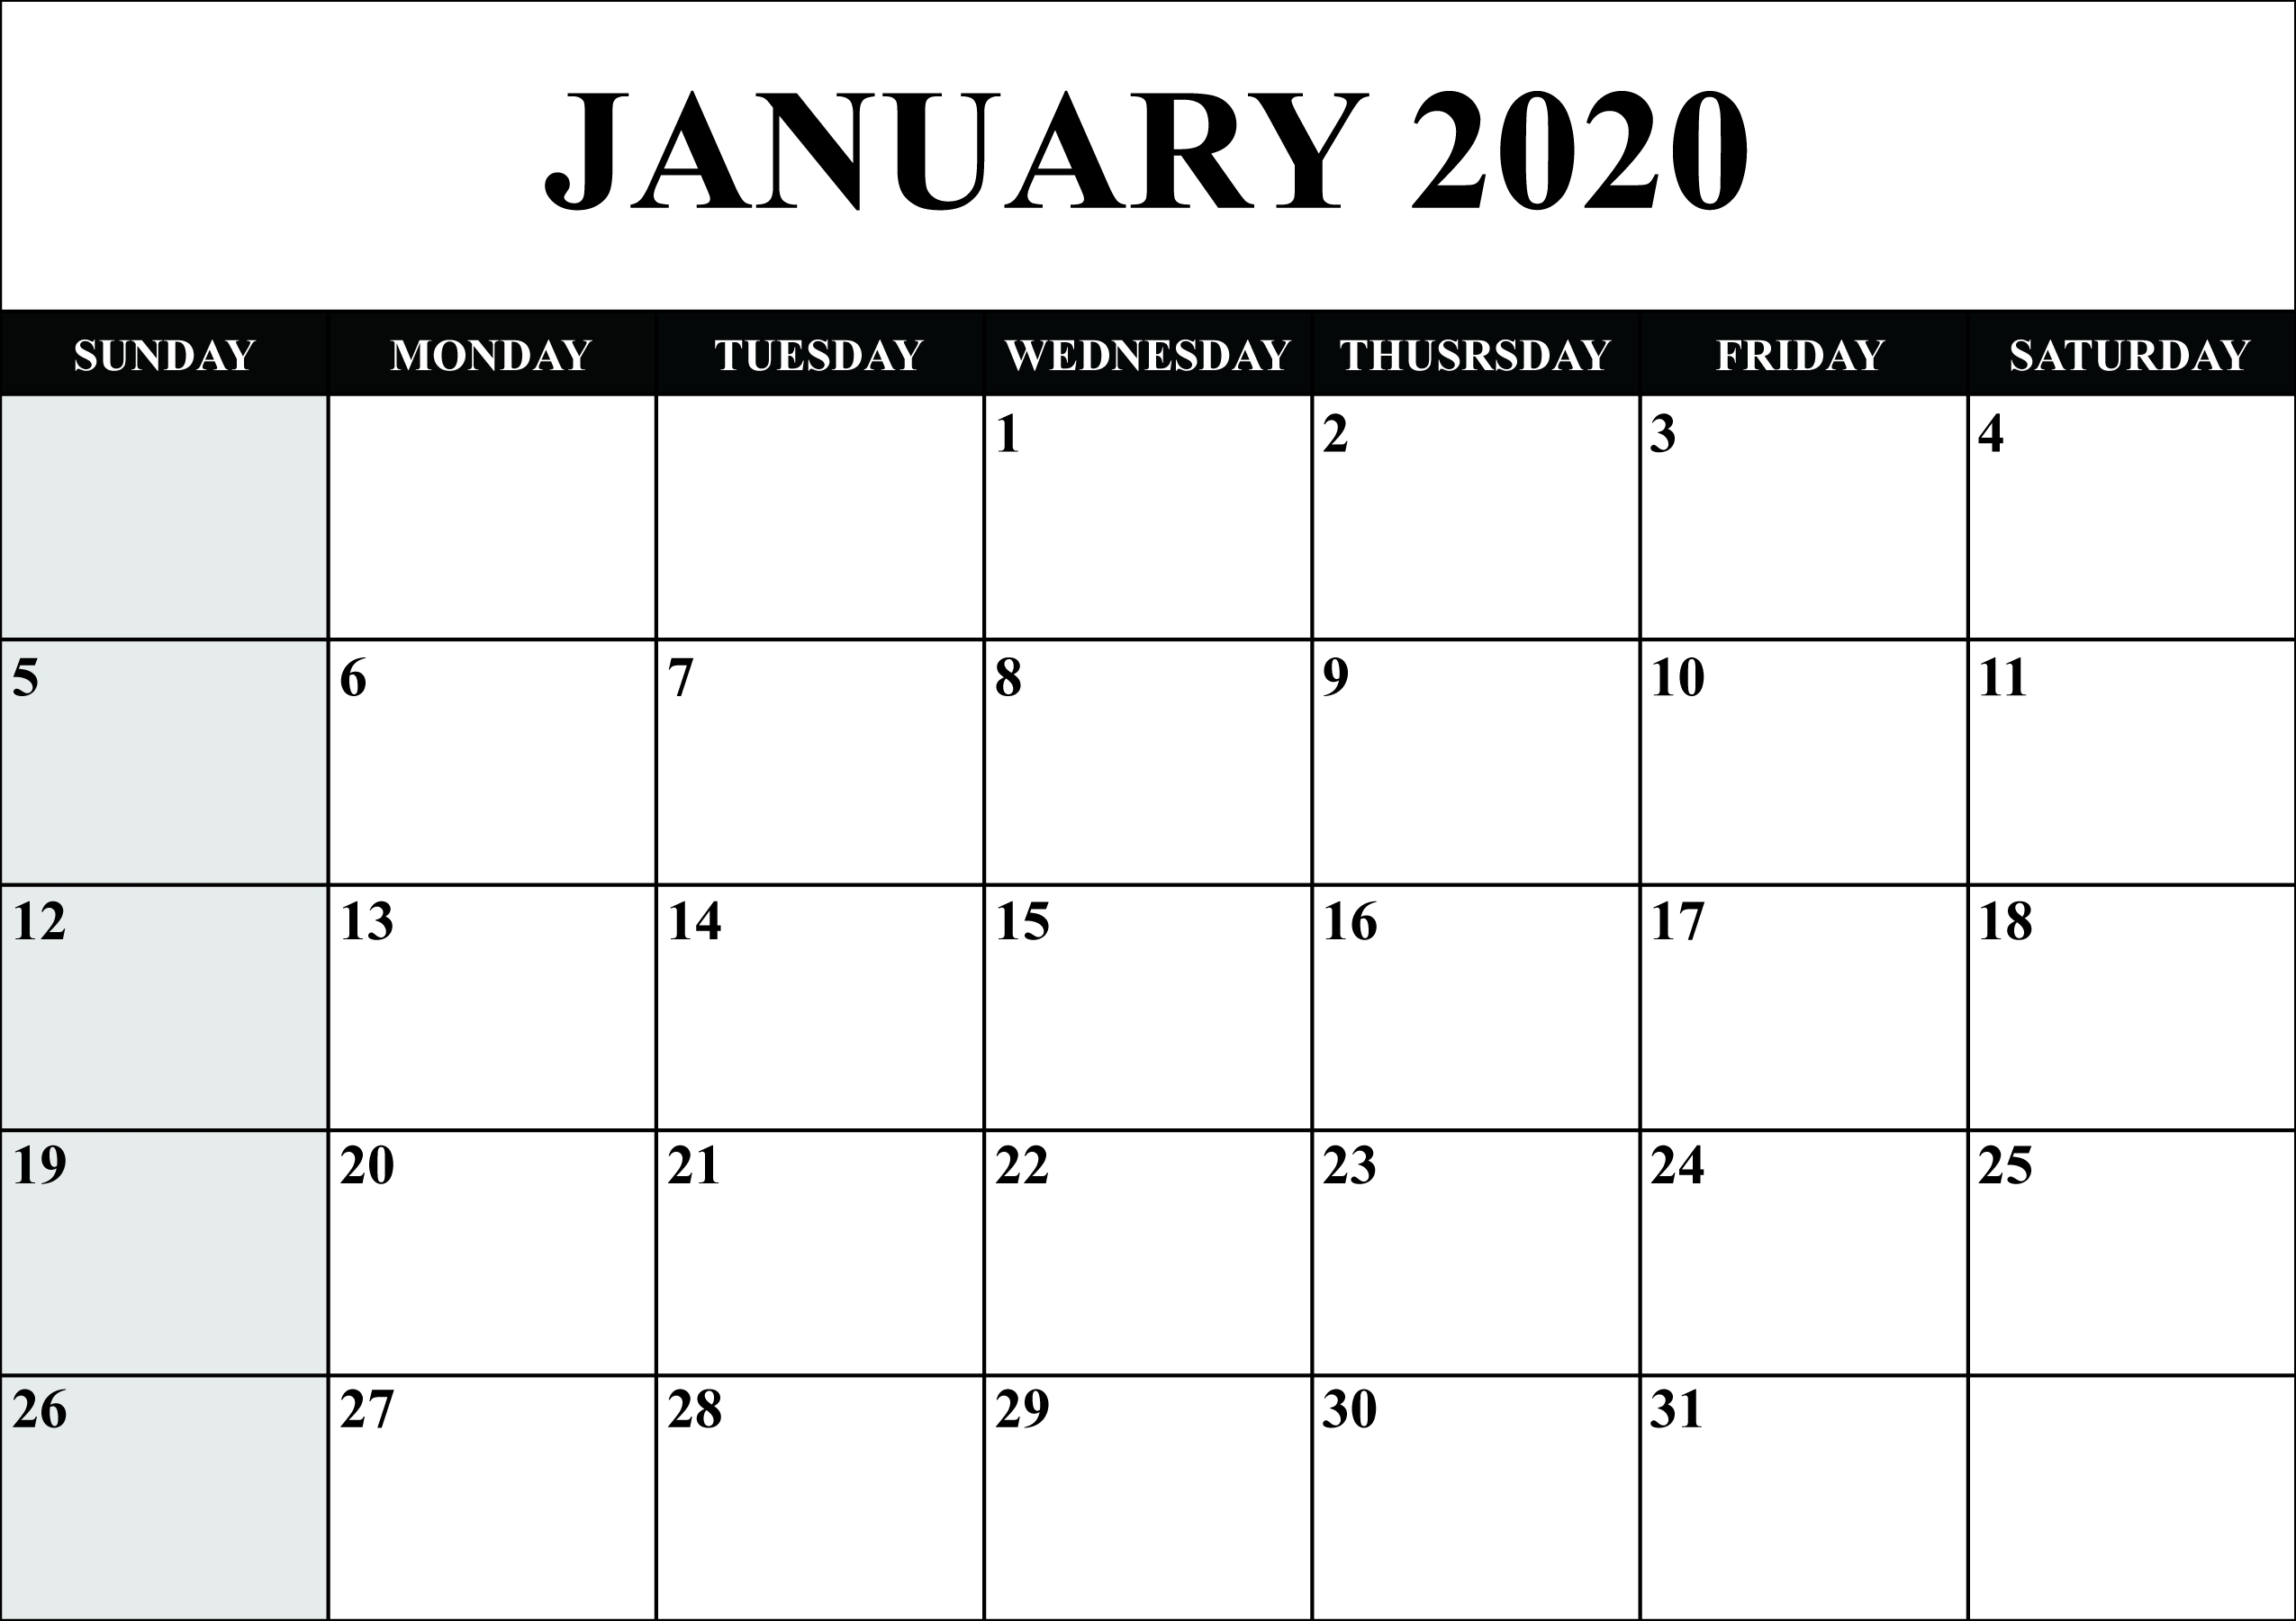 Free Blank January 2020 Calendar Printable In Pdf, Word, Excel with regard to Outlook Calendar 2020